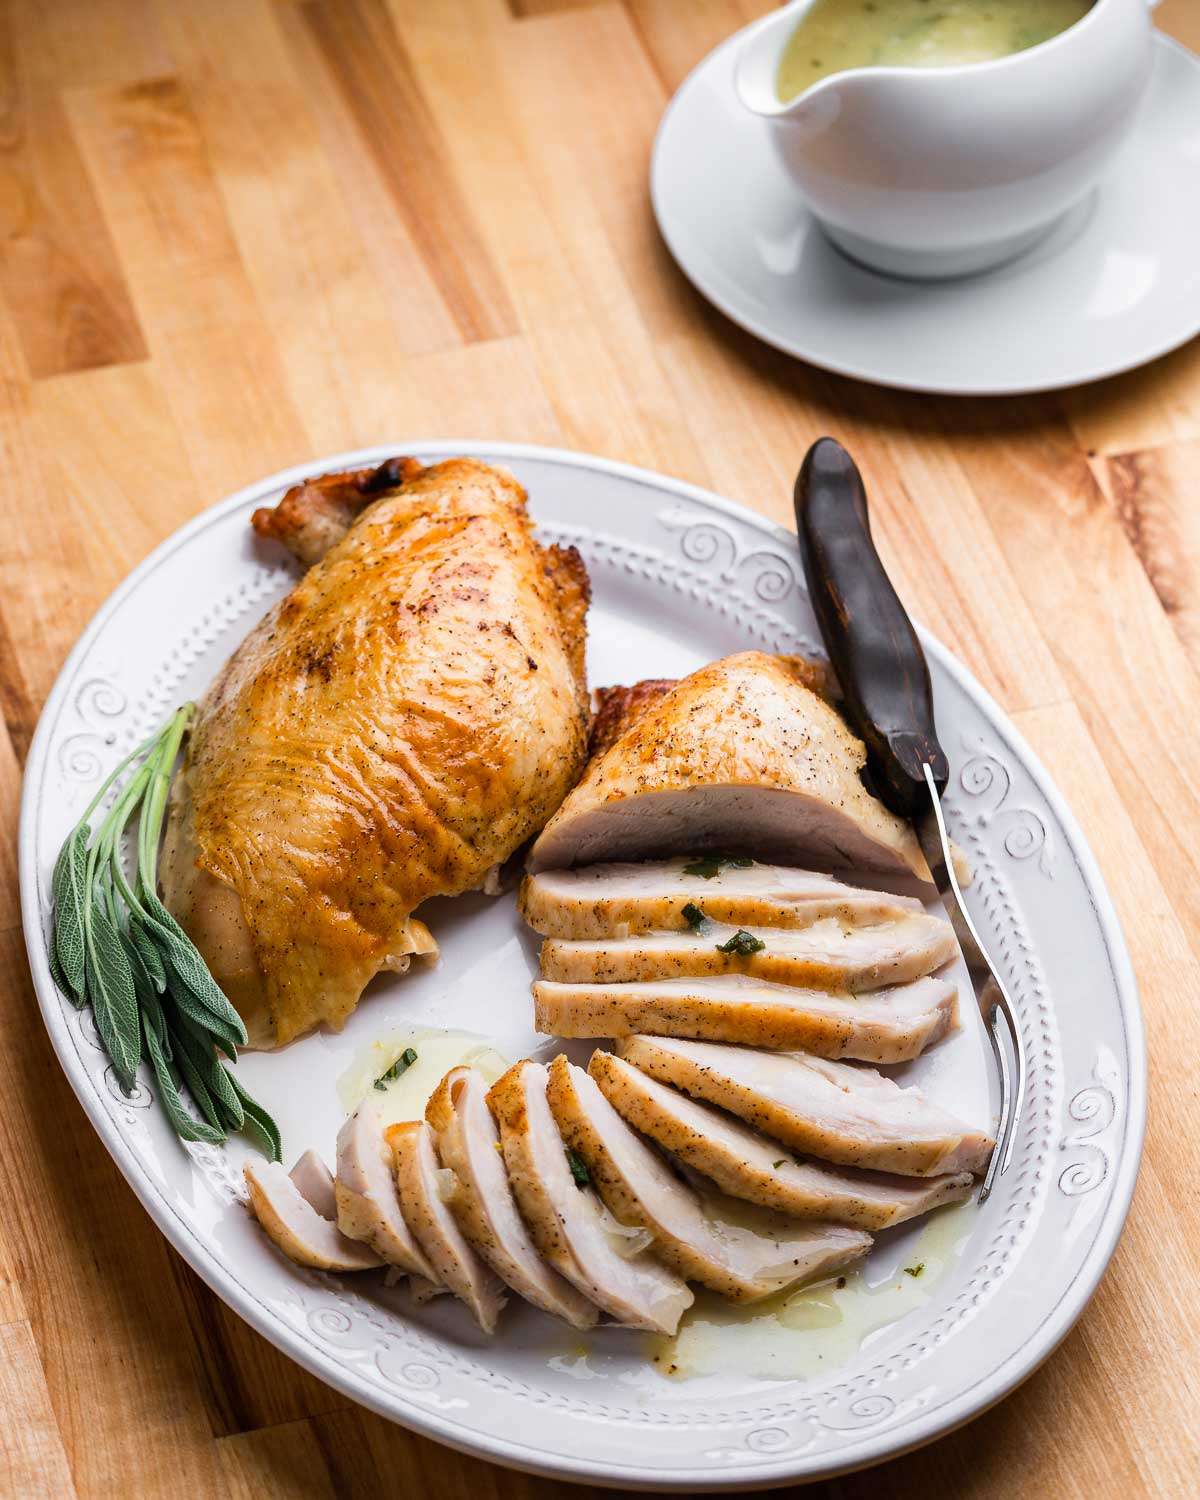 Platter with one carved and one uncarved turkey breast and carving fork.